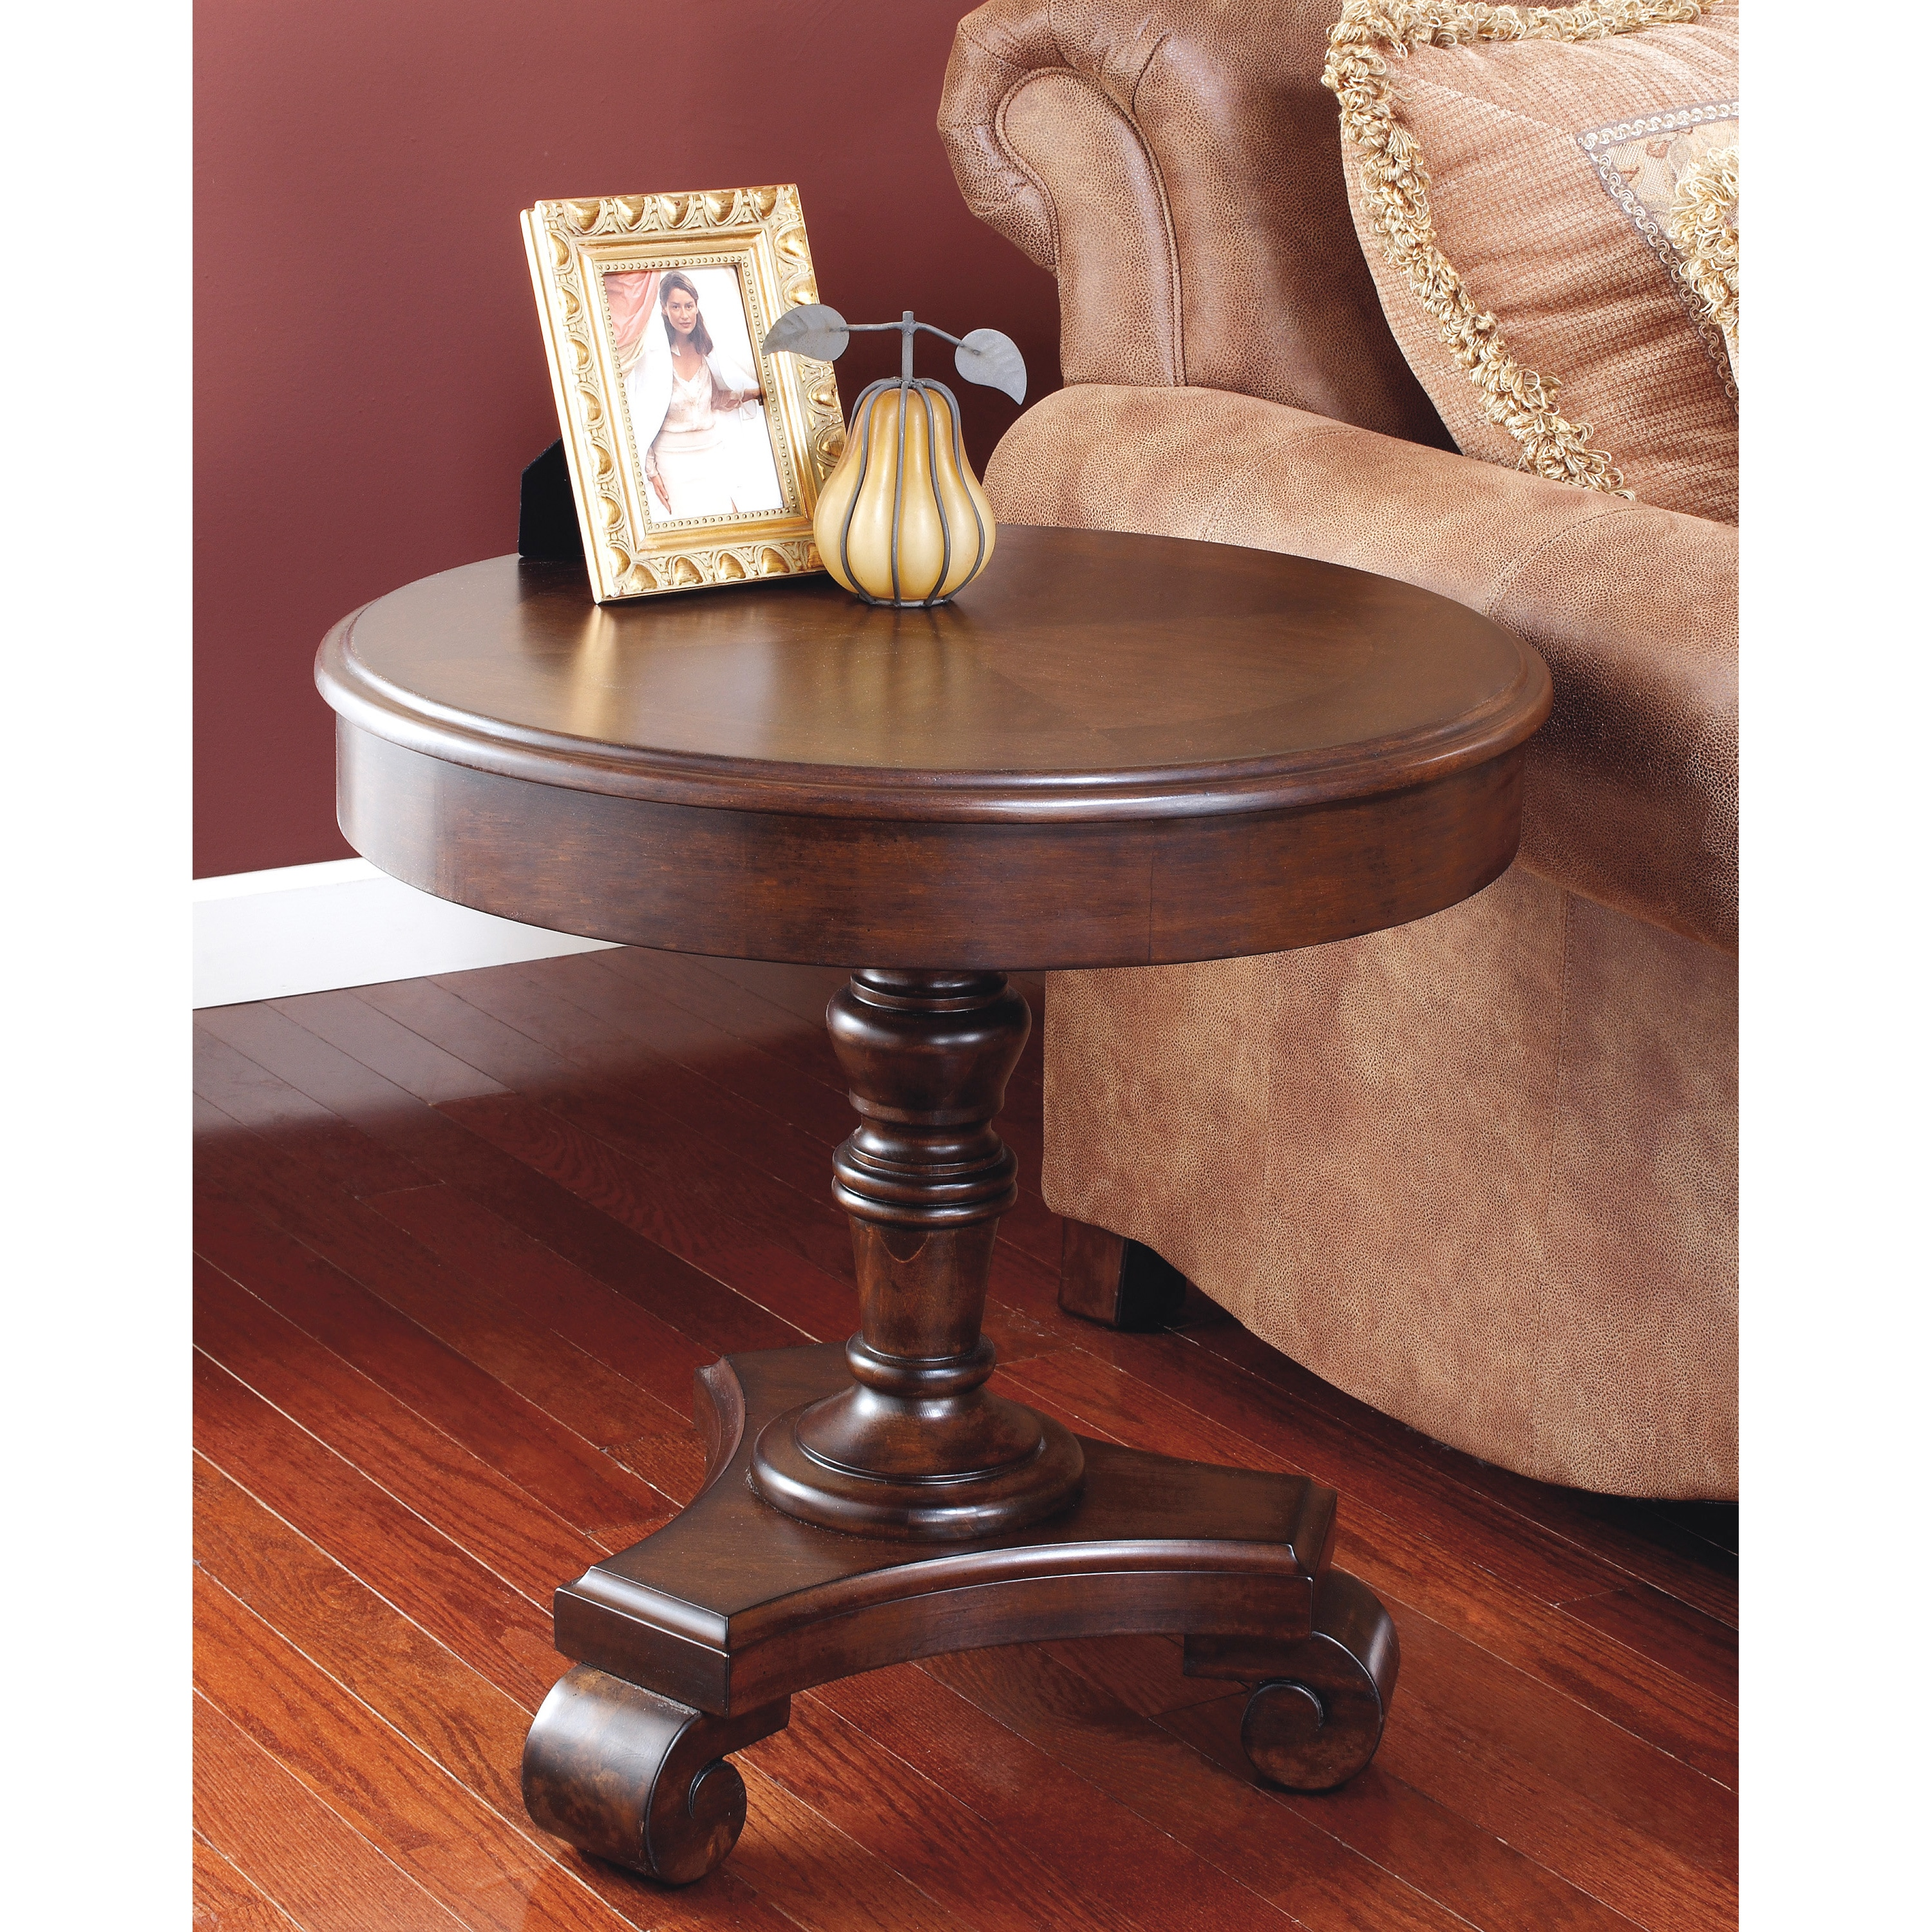 Signature Design By Ashley Brookfield Brown Round End: Signature Designs By Ashley 'Brookfield' Dark Rustic Round